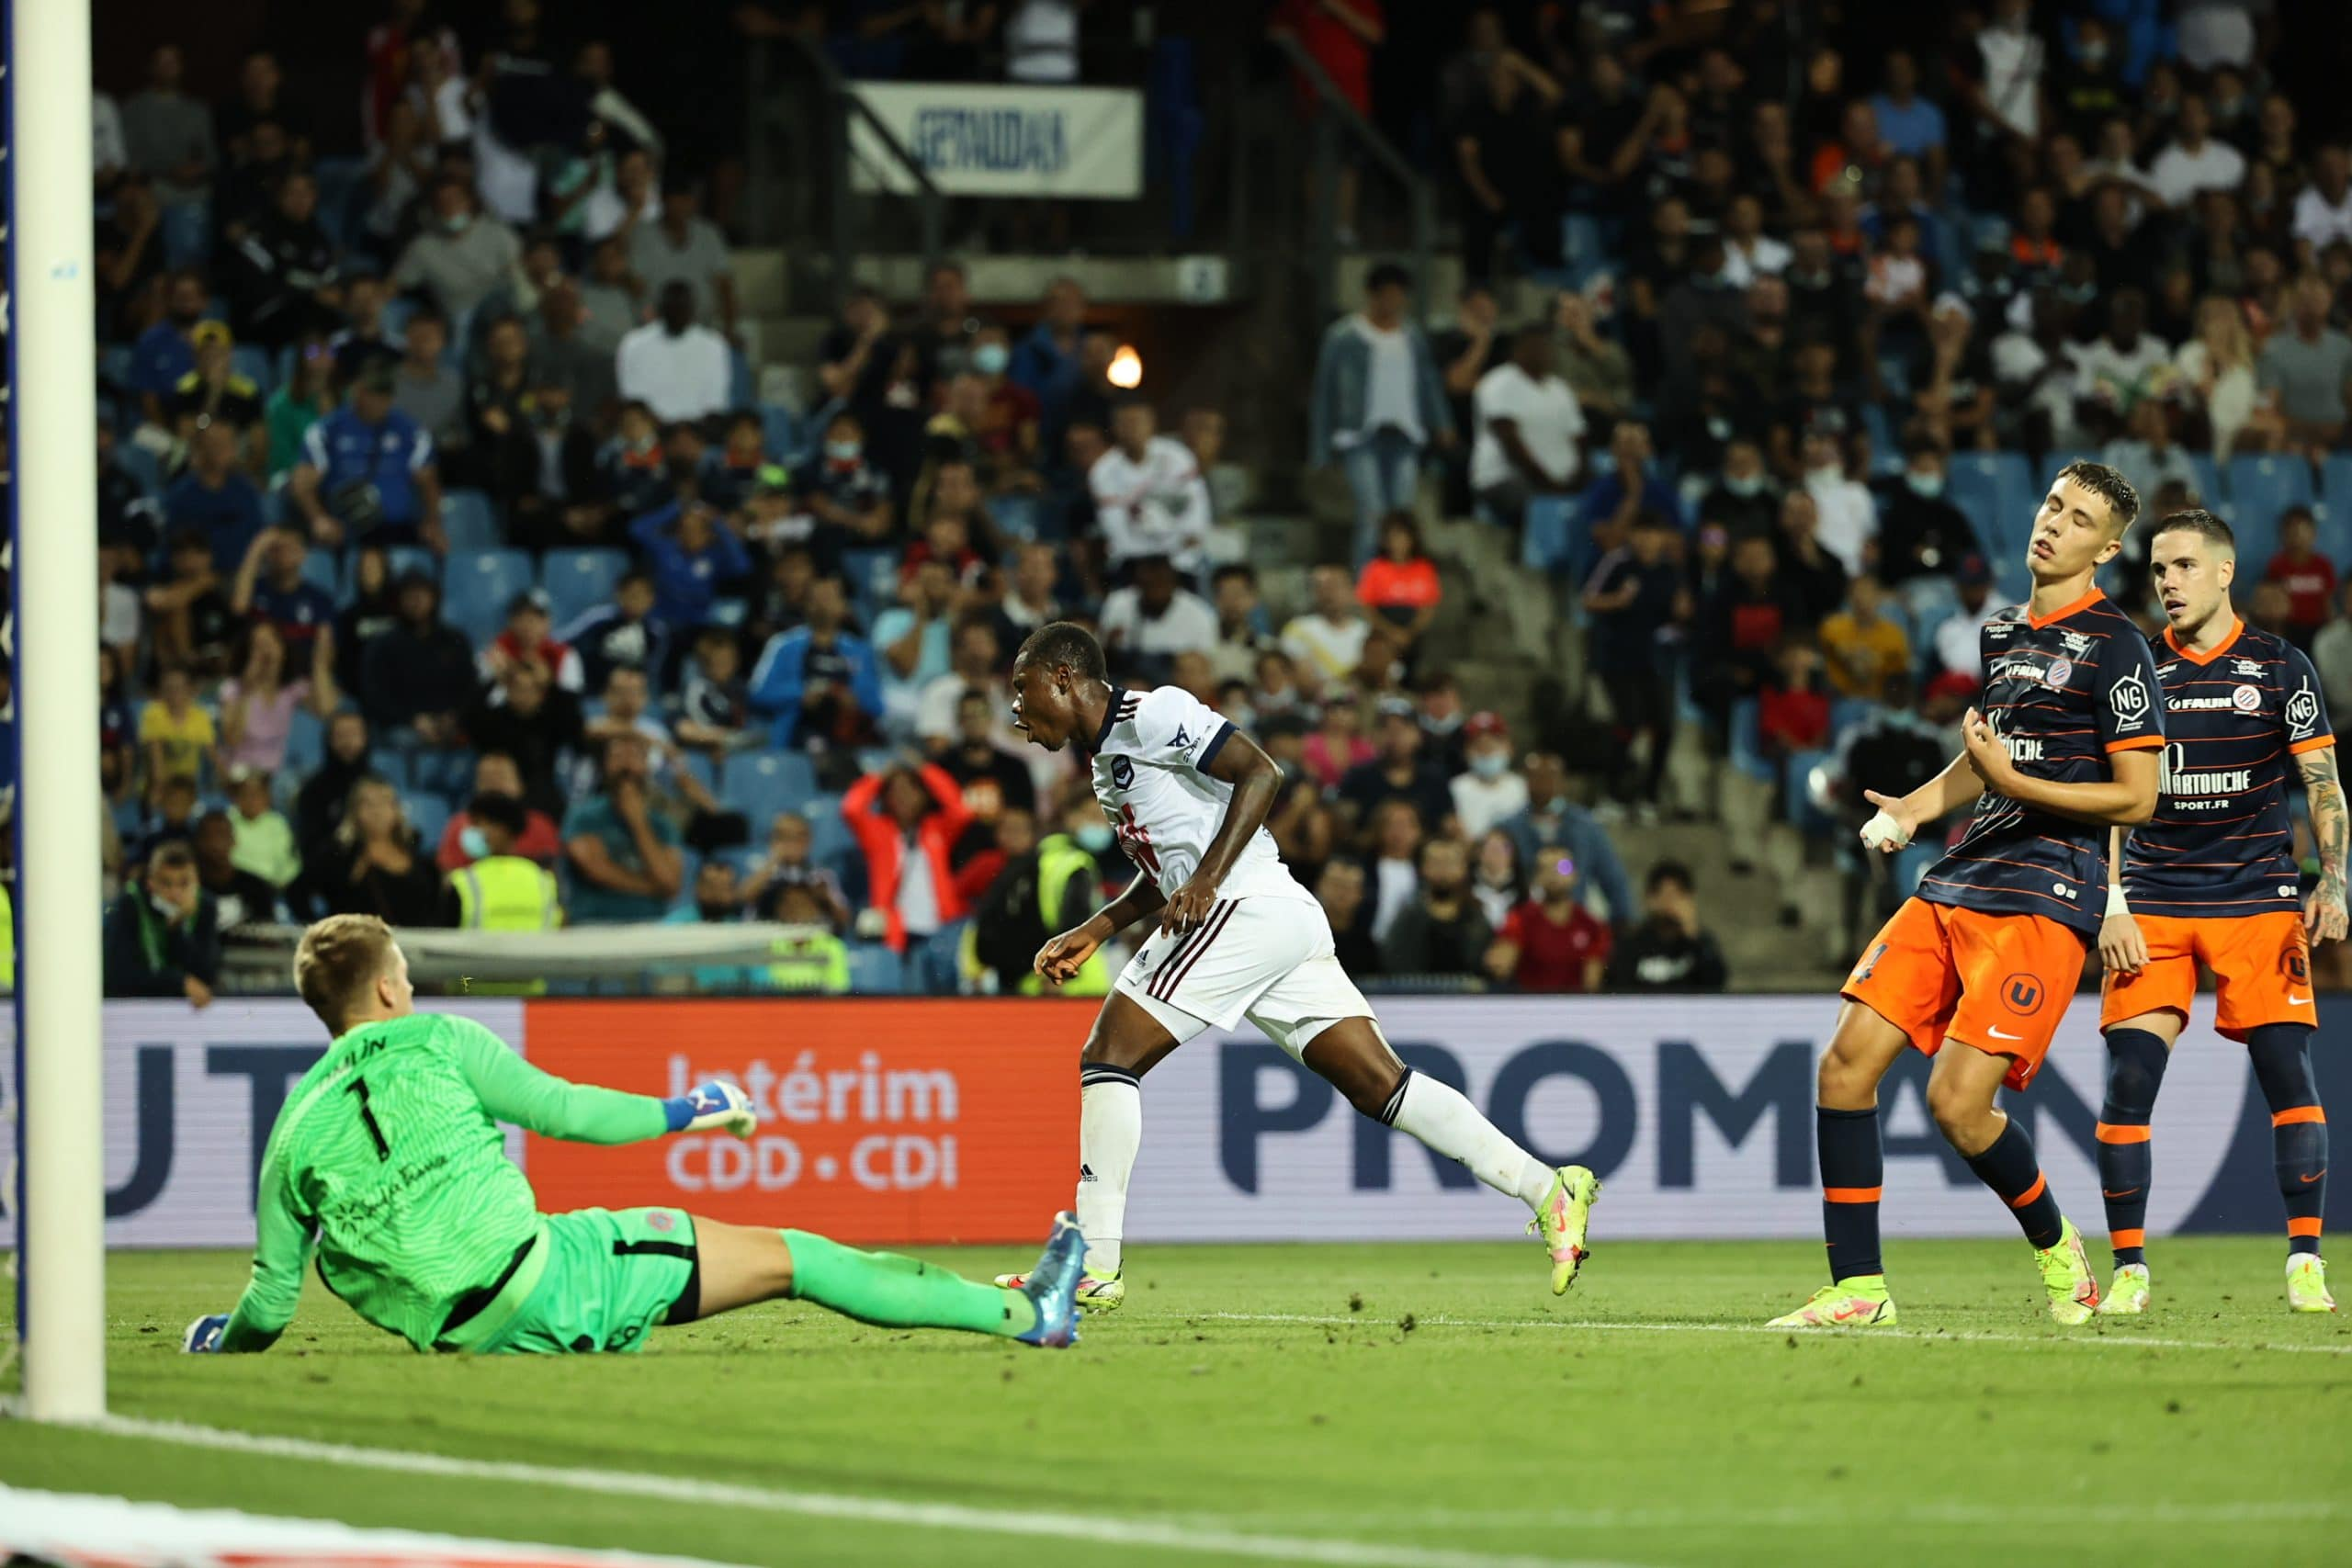 Ligue 1: Kalu's Late Goal Rescues Point For Bordeaux At Montpellier